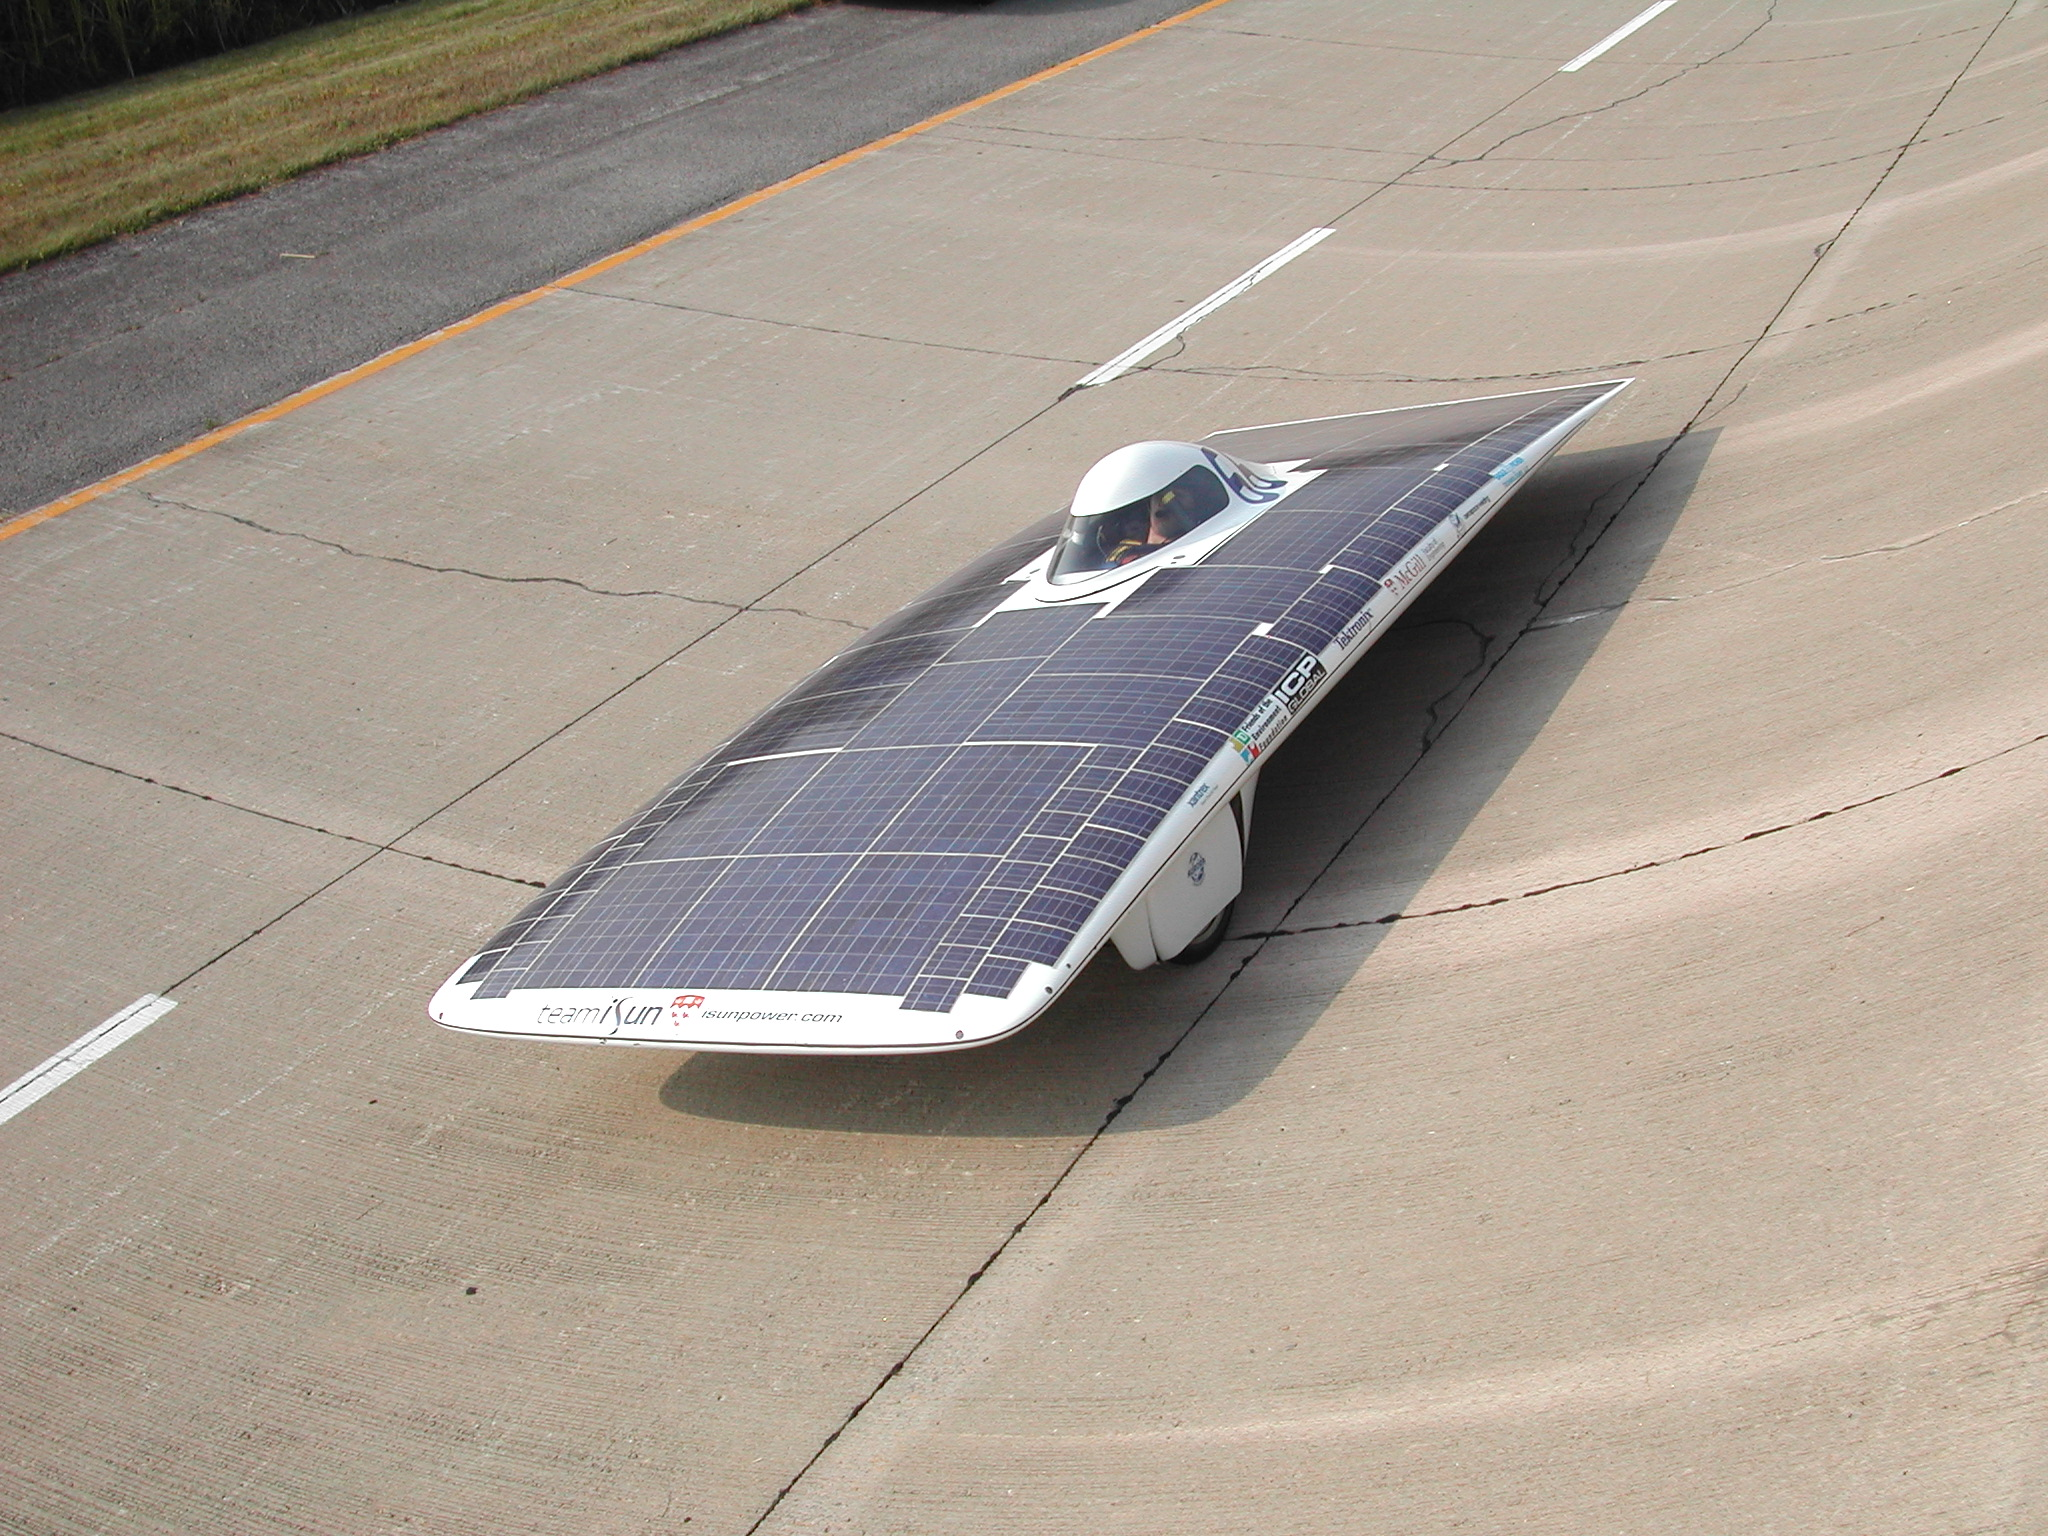 The iSun solar car prepping for the 2002 Formula Sun Grand Prix on the Canadian government test track outside Montreal Quebec Canada in 2002.